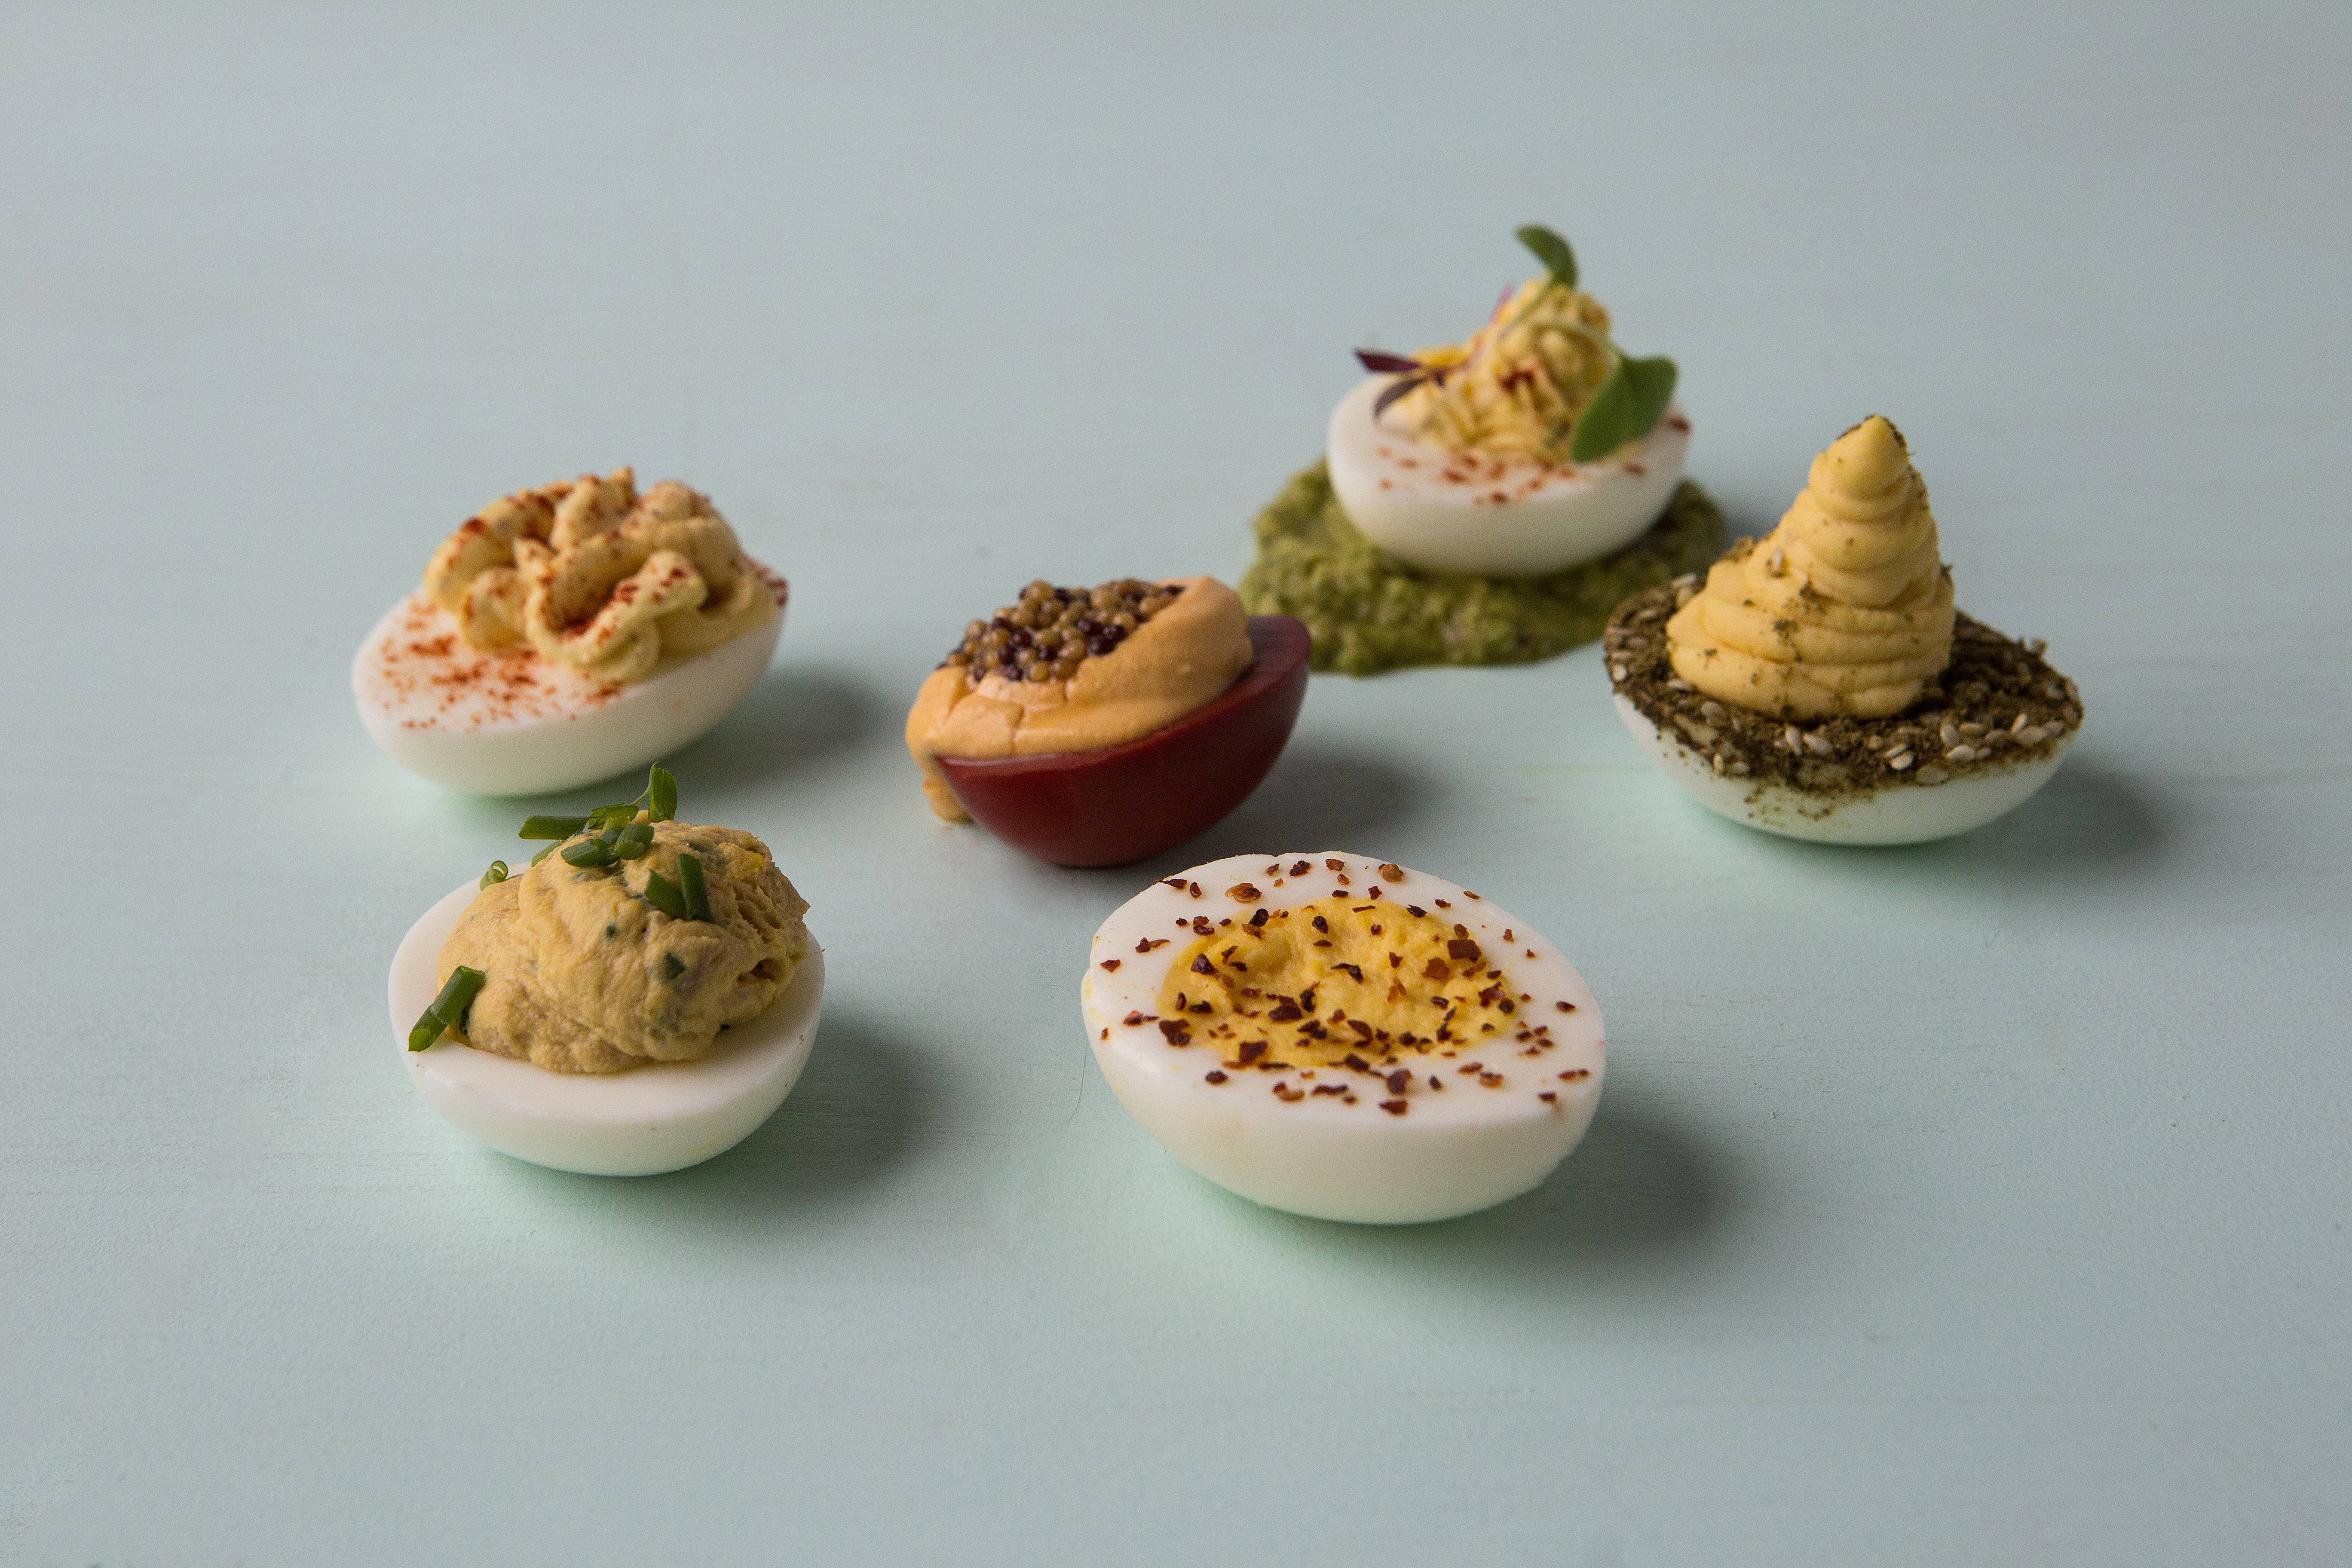 Why choose between them? Make a sampler for your next get-together. From left to right: Horseradish Deviled Eggs (in back); Lourdes's Deviled Eggs With Foie Gras and Tuna; Proof's Beet-Pickled Deviled Eggs; Less-Devilish Eggs; Homestead Deviled Eggs and Hummus Deviled Eggs.